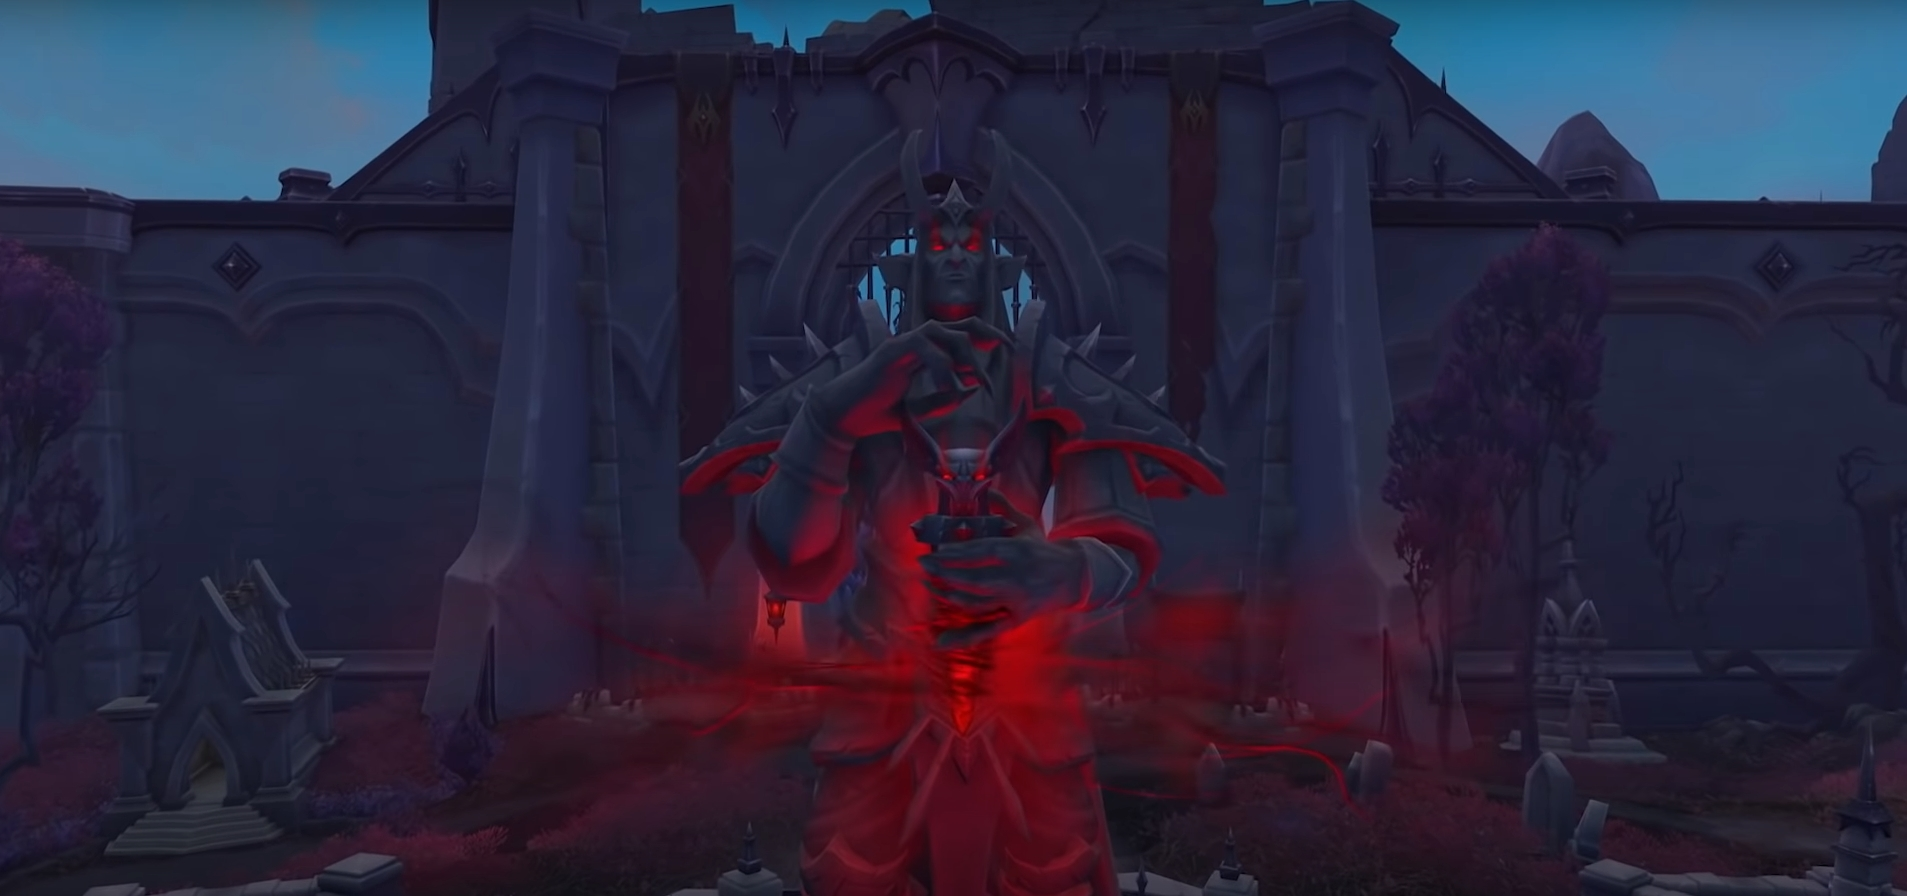 World Of Warcraft: Shadowlands Weekly Mythic Dungeons Provides A Free Heroic Castle Nathria Drop!